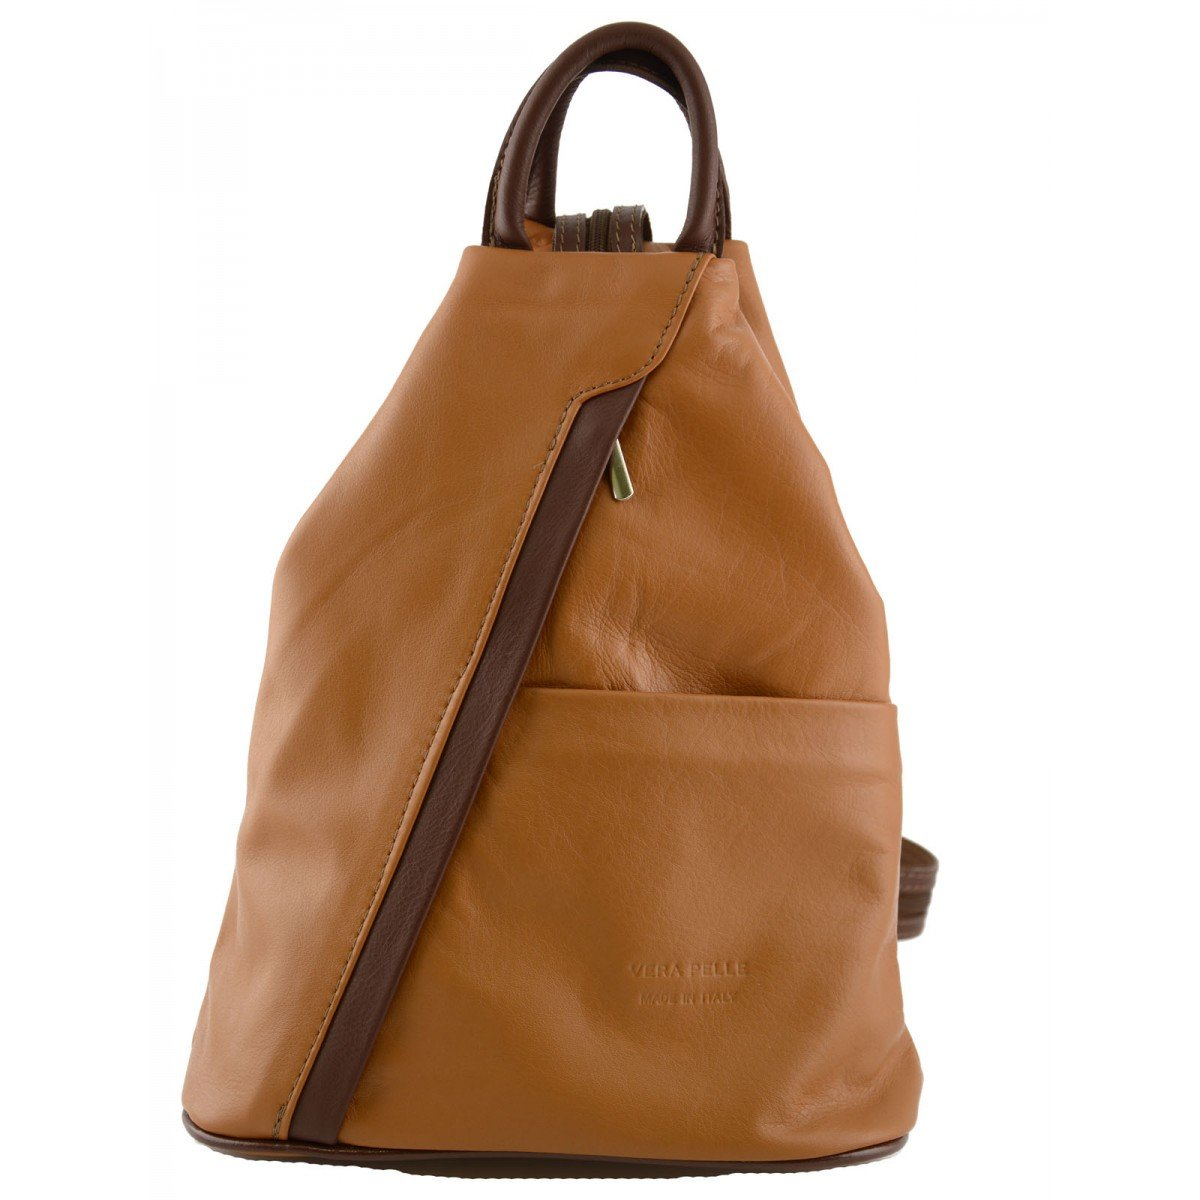 Made In Italy Woman Leather Backpack Color Cognac Brown - Backpack   B014T6IMHI